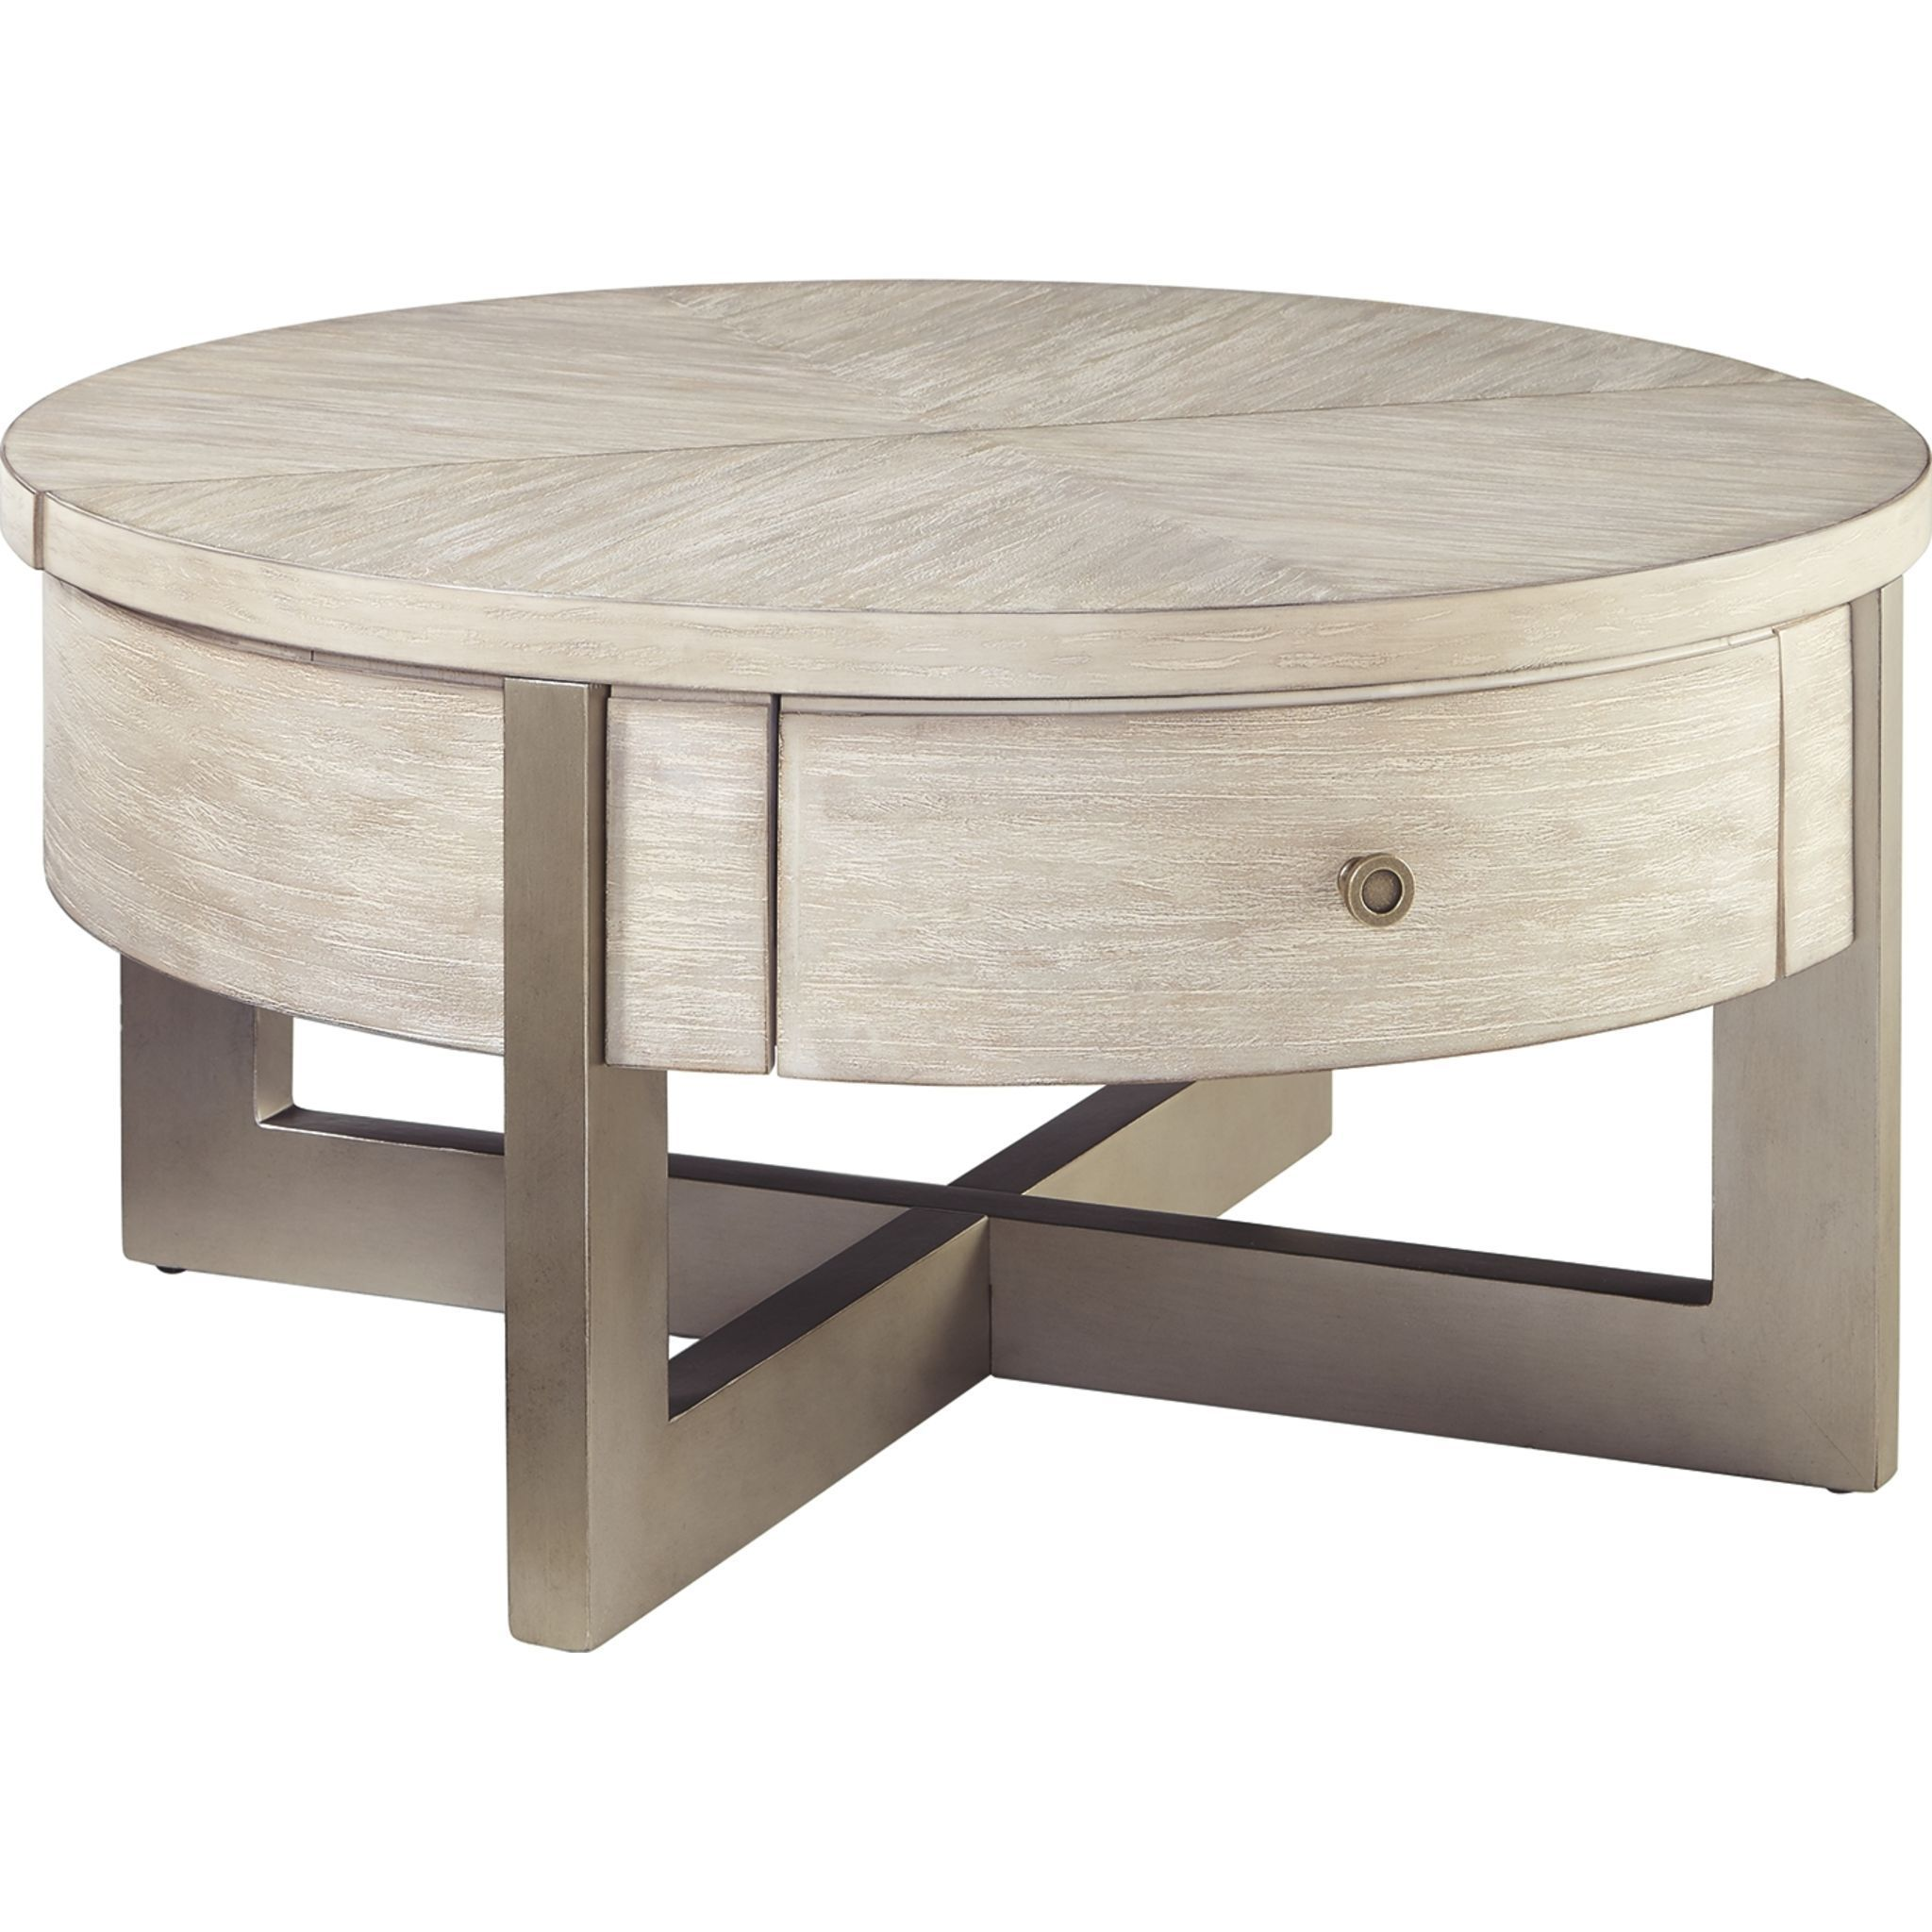 Vreeland Coffee Table Whitewash Coffee Table Contemporary End Tables Lift Top Coffee Table [ 2048 x 2048 Pixel ]